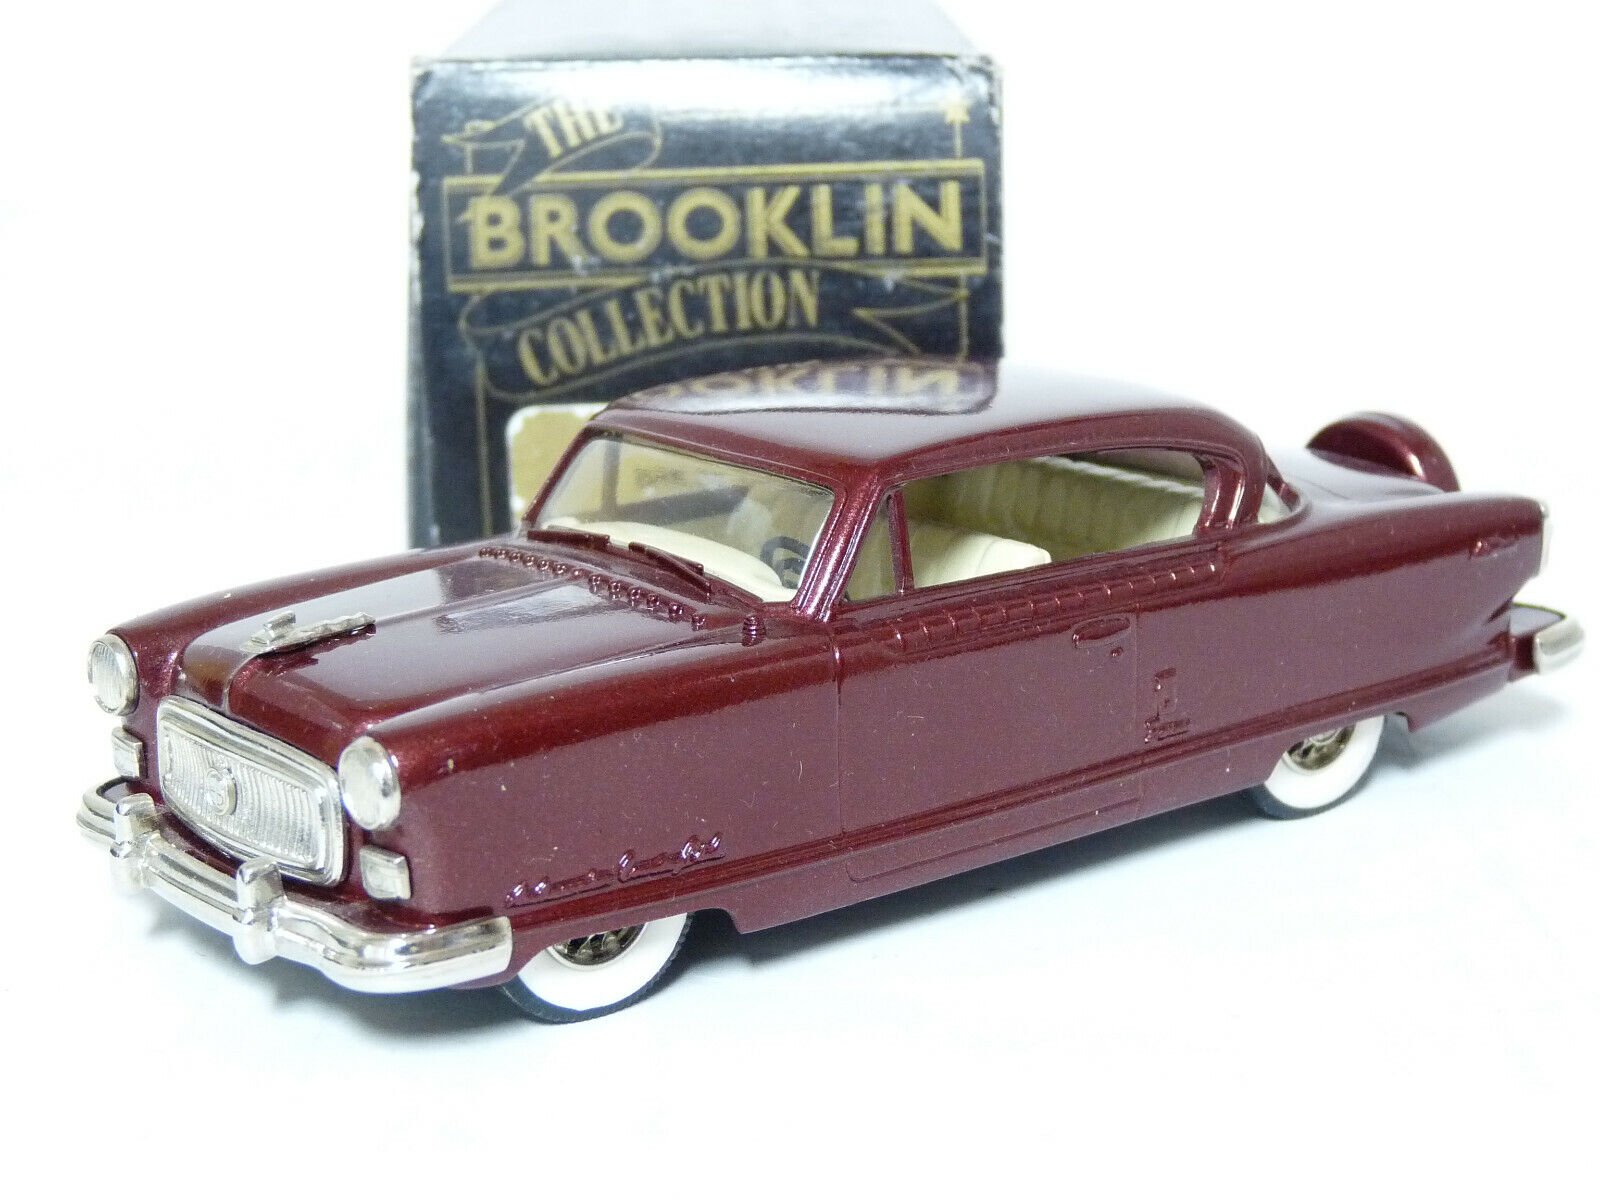 Brooklyn brk34 - 1   43 - 1954 Embajador Nash